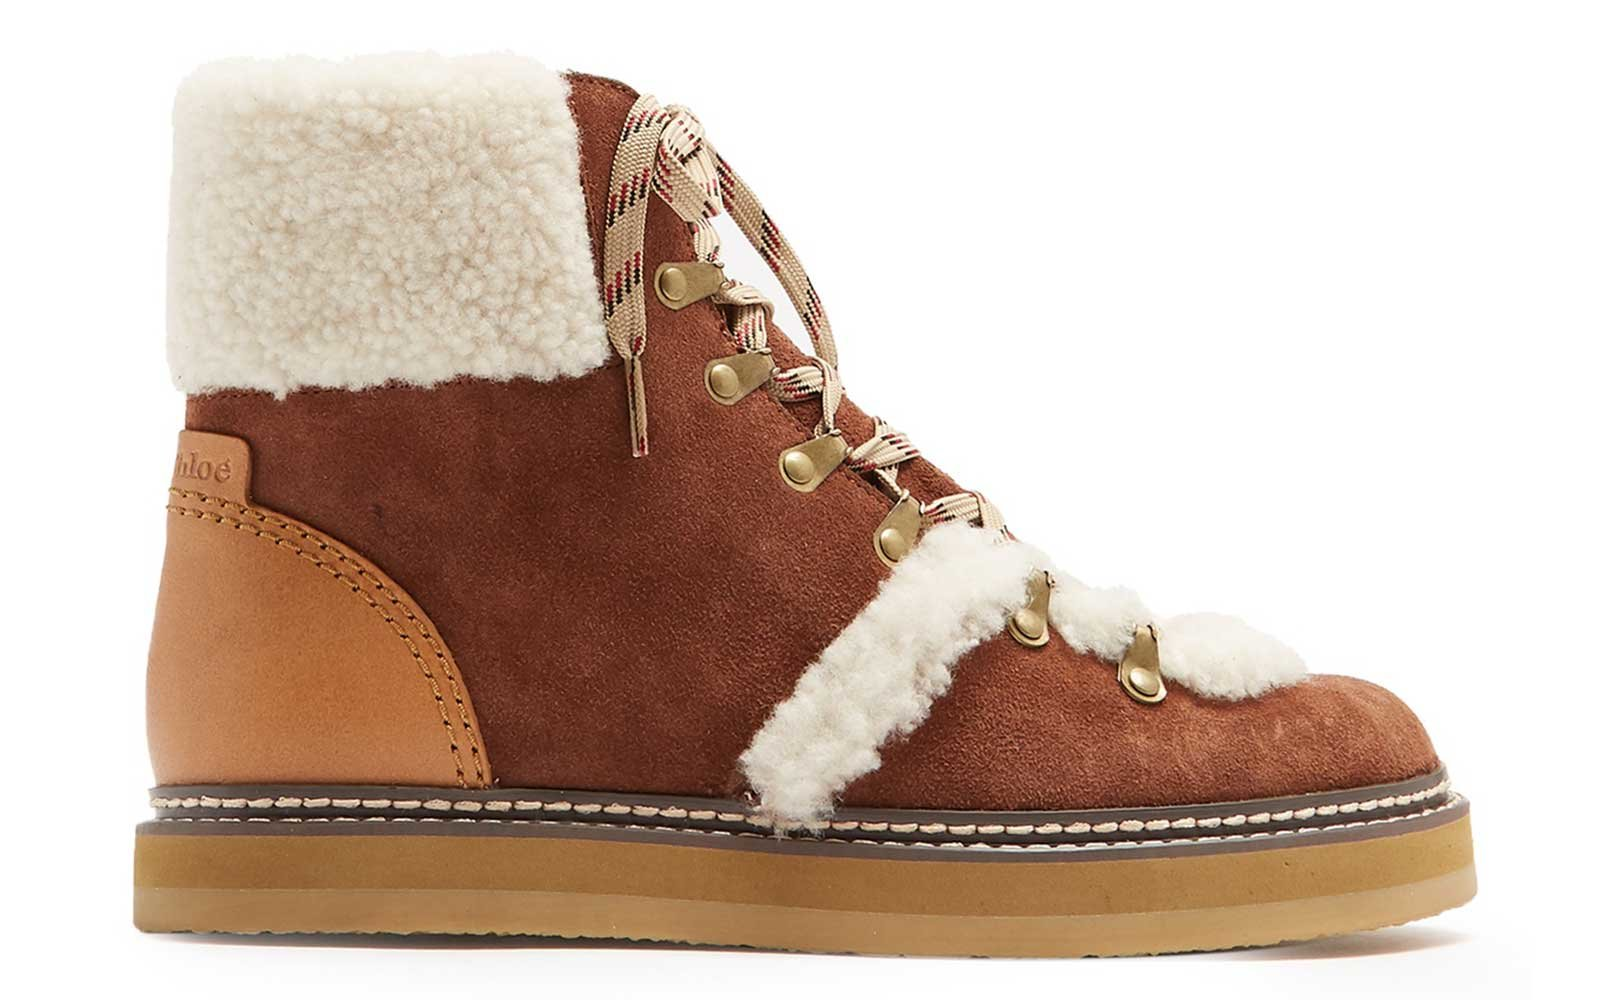 Shearling-trimmed suede boots from See by Chloe